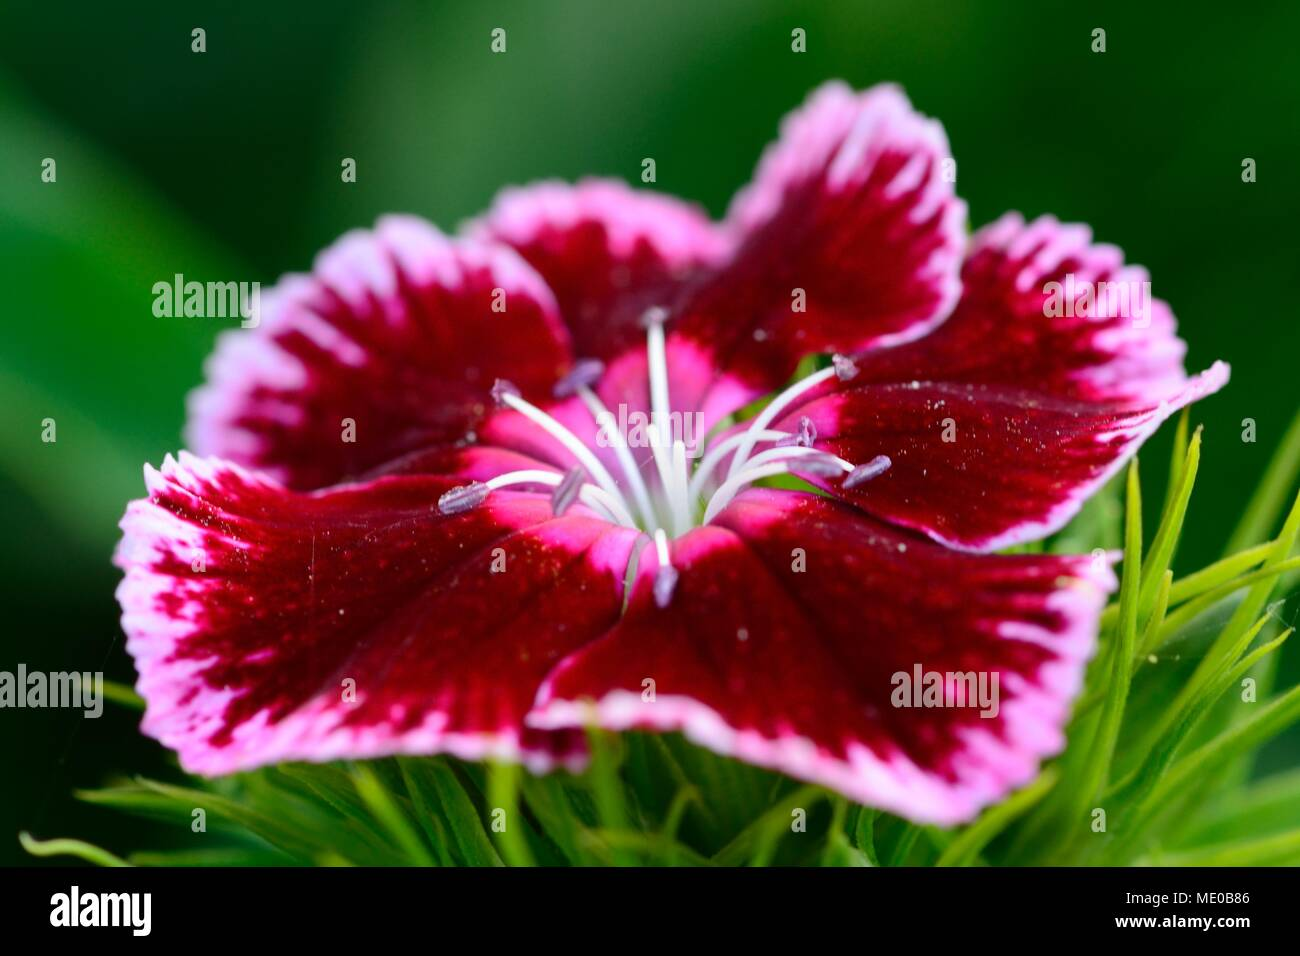 Macro shot of a pink and white carnation in bloom (Dianthus barbatus) - Stock Image